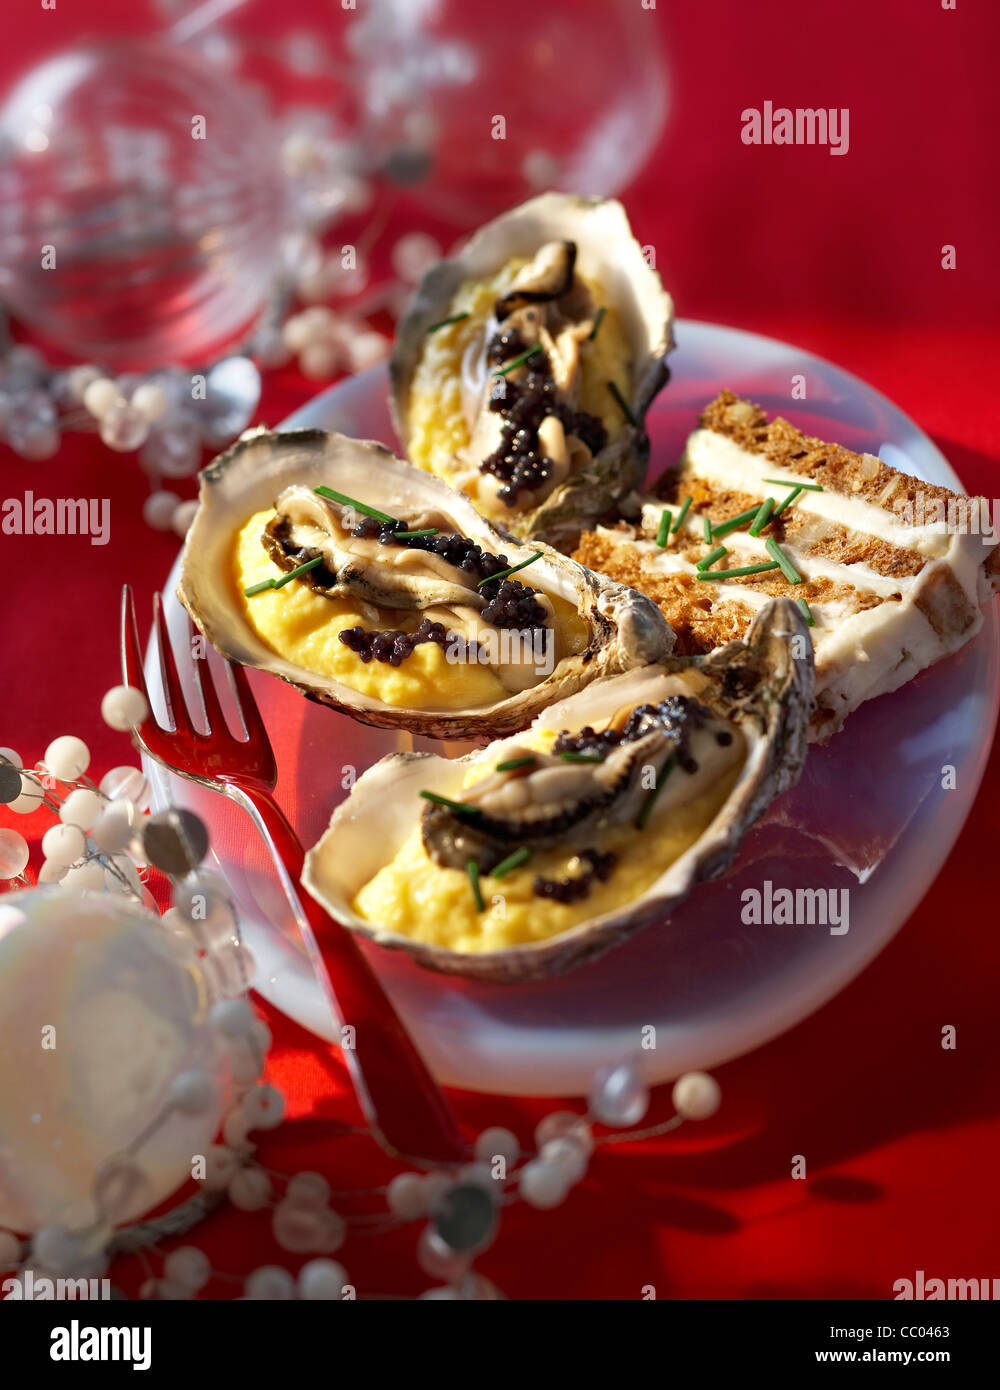 Scramble Eggs with Oysters and Caviar - Stock Image